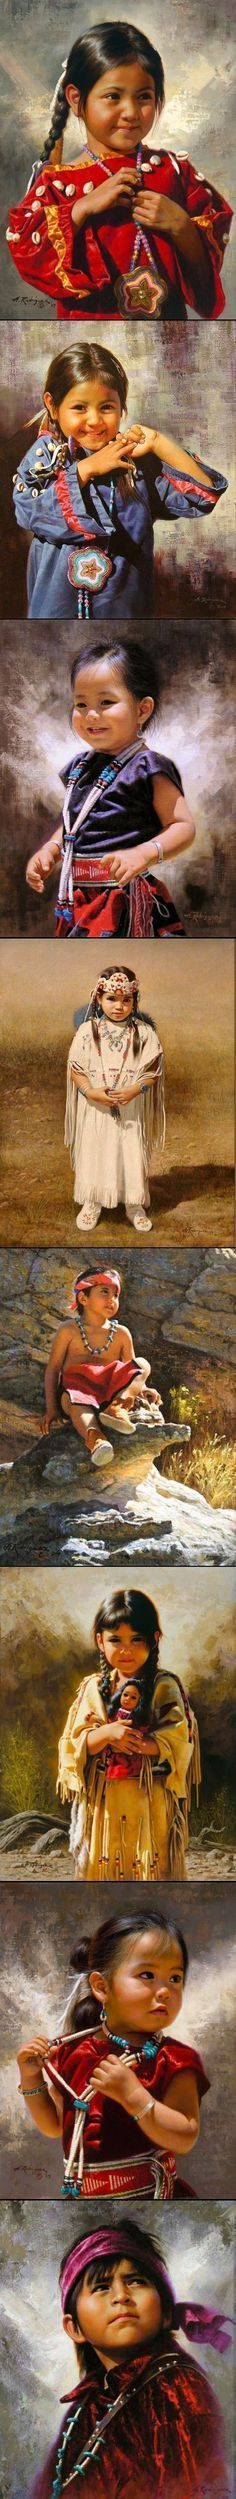 """The beautiful eyes of the Native American children in the oil paintings of Alfredo Rodriguez (1954, American Painter) § """"Alfredo Rodriguez (1954, American)"""" by Marco from I am a Child ~ children in art history (http://iamachild.wordpress.com). Blog posted on May 24, 2011. § Collage created via http://pinthemall.net:"""